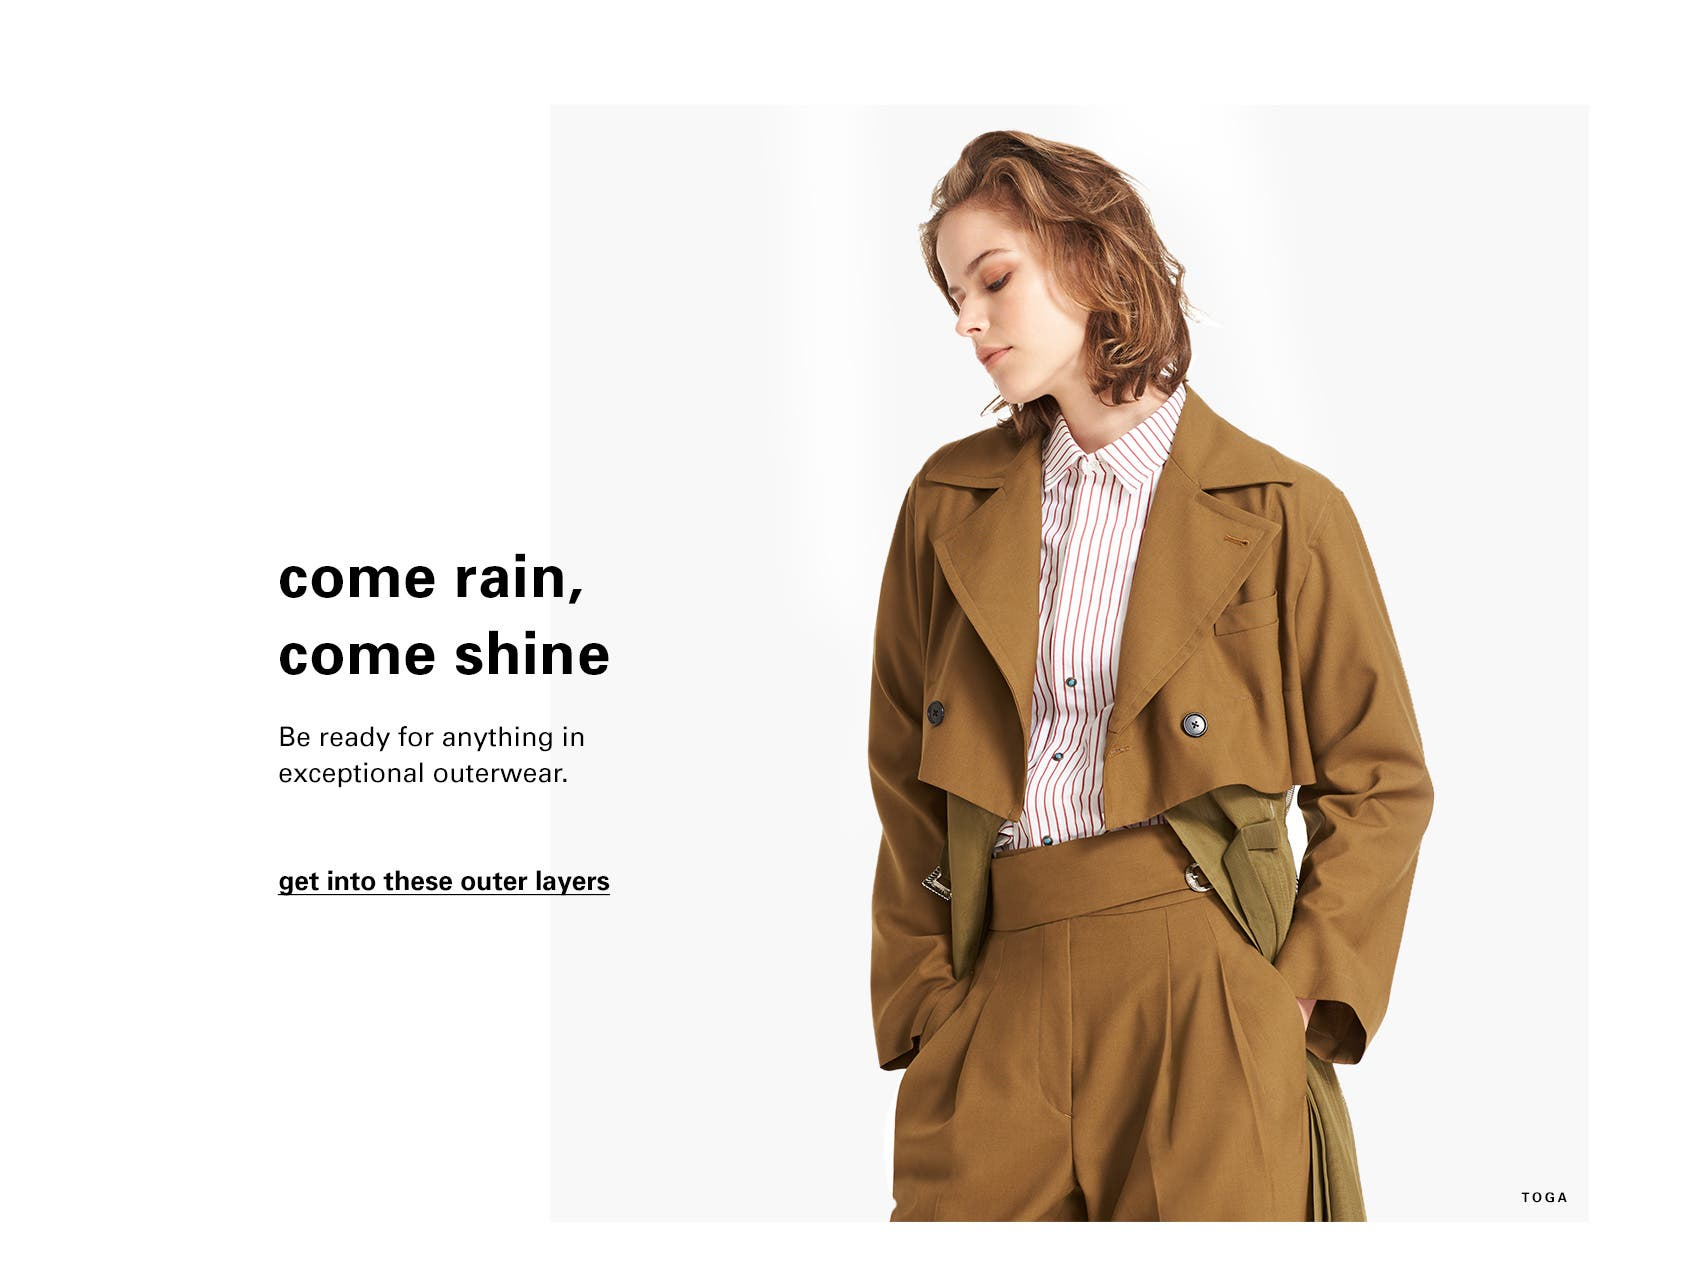 Come rain, come shine. Be ready for anything in exceptional coats and jackets for the new season from emerging and advanced designers.